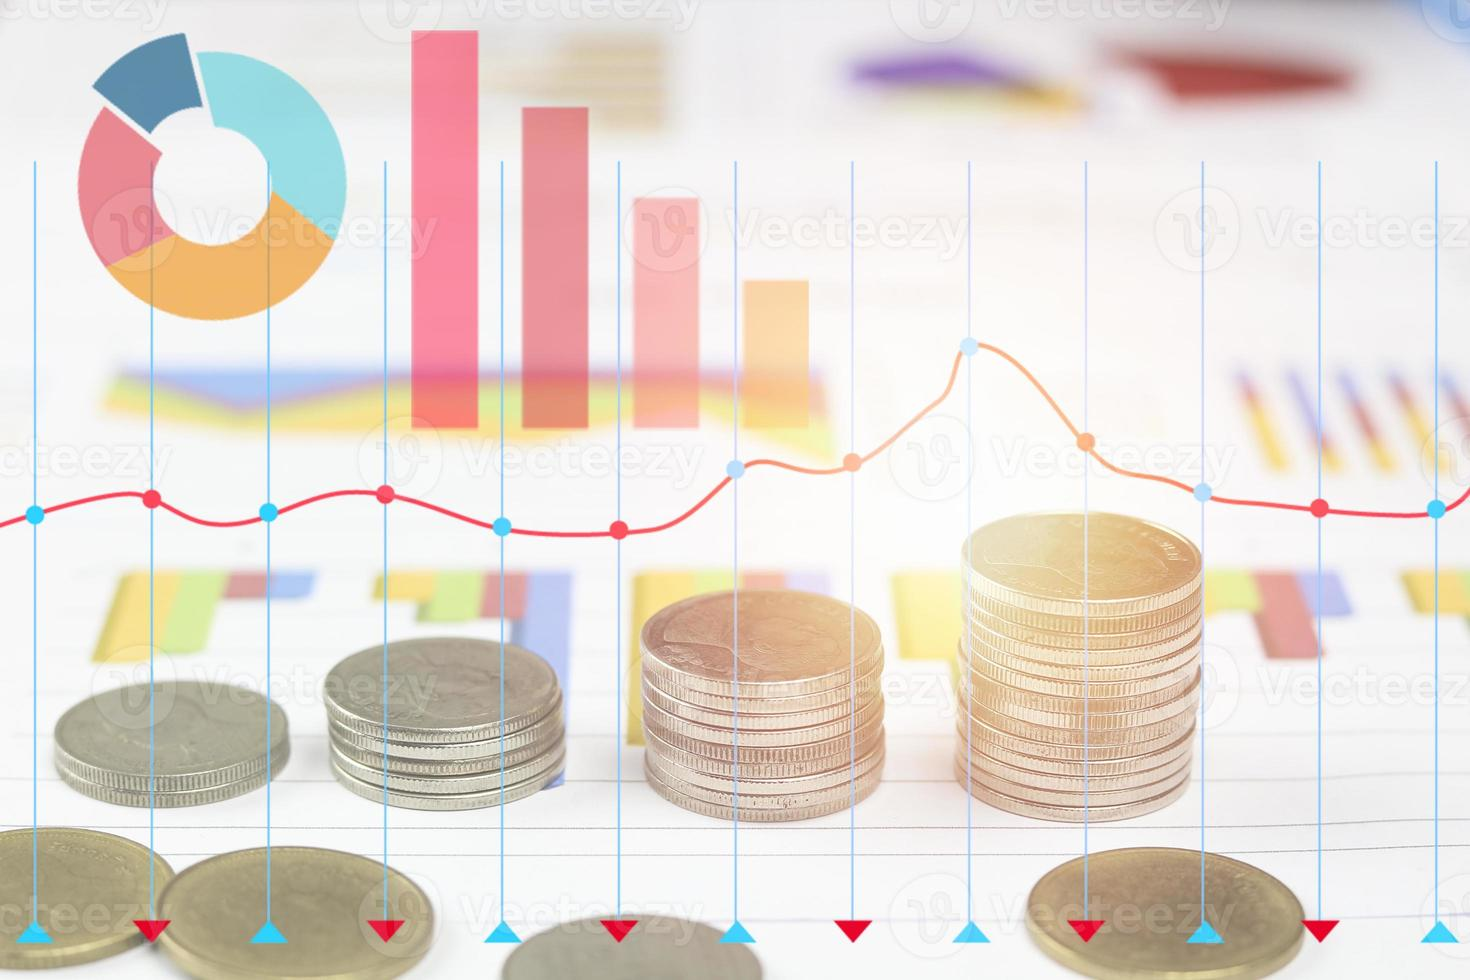 Coins with graph overlay photo